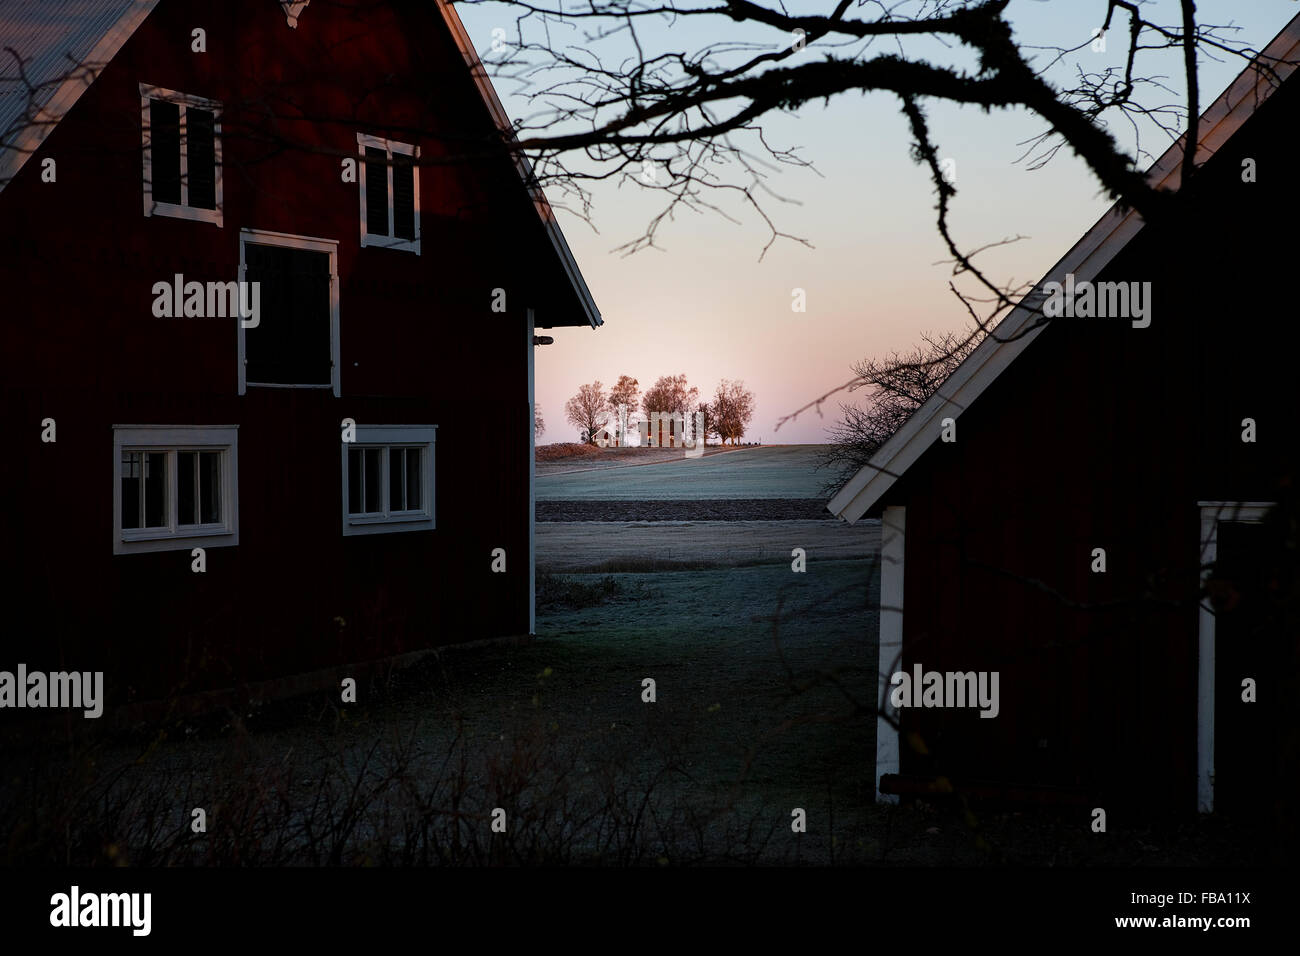 Sweden, Ostergotland, Vaderstad, Frosted houses and field - Stock Image